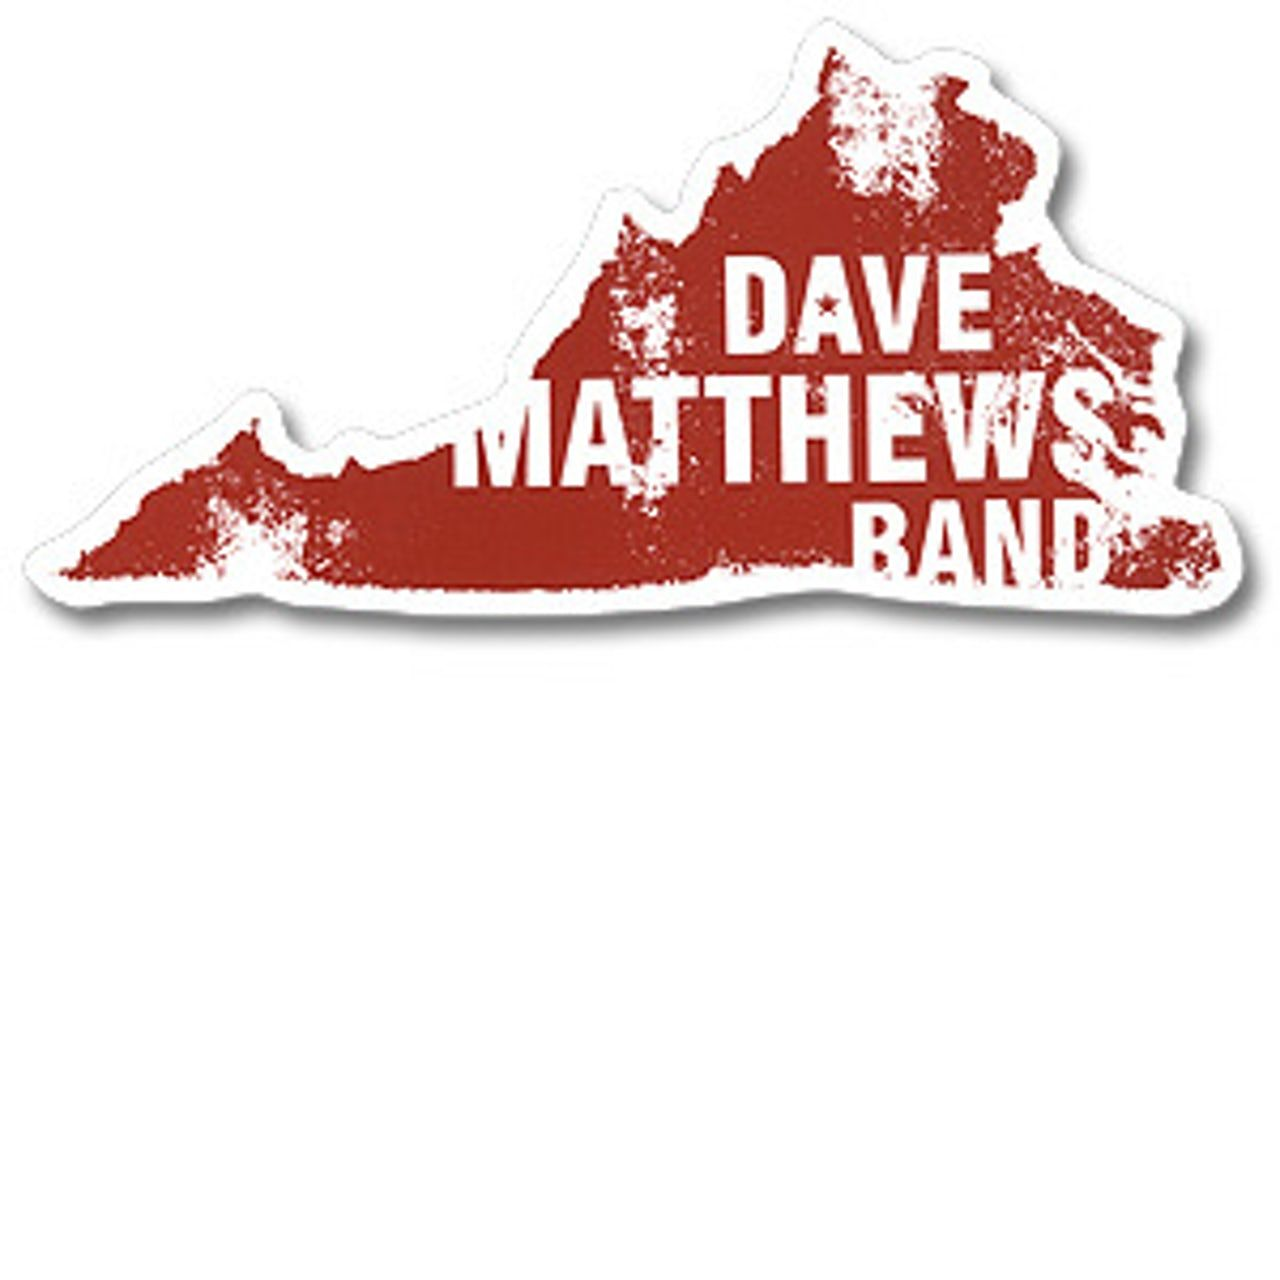 Dave Matthews Band Virginia Sticker Dave matthews band